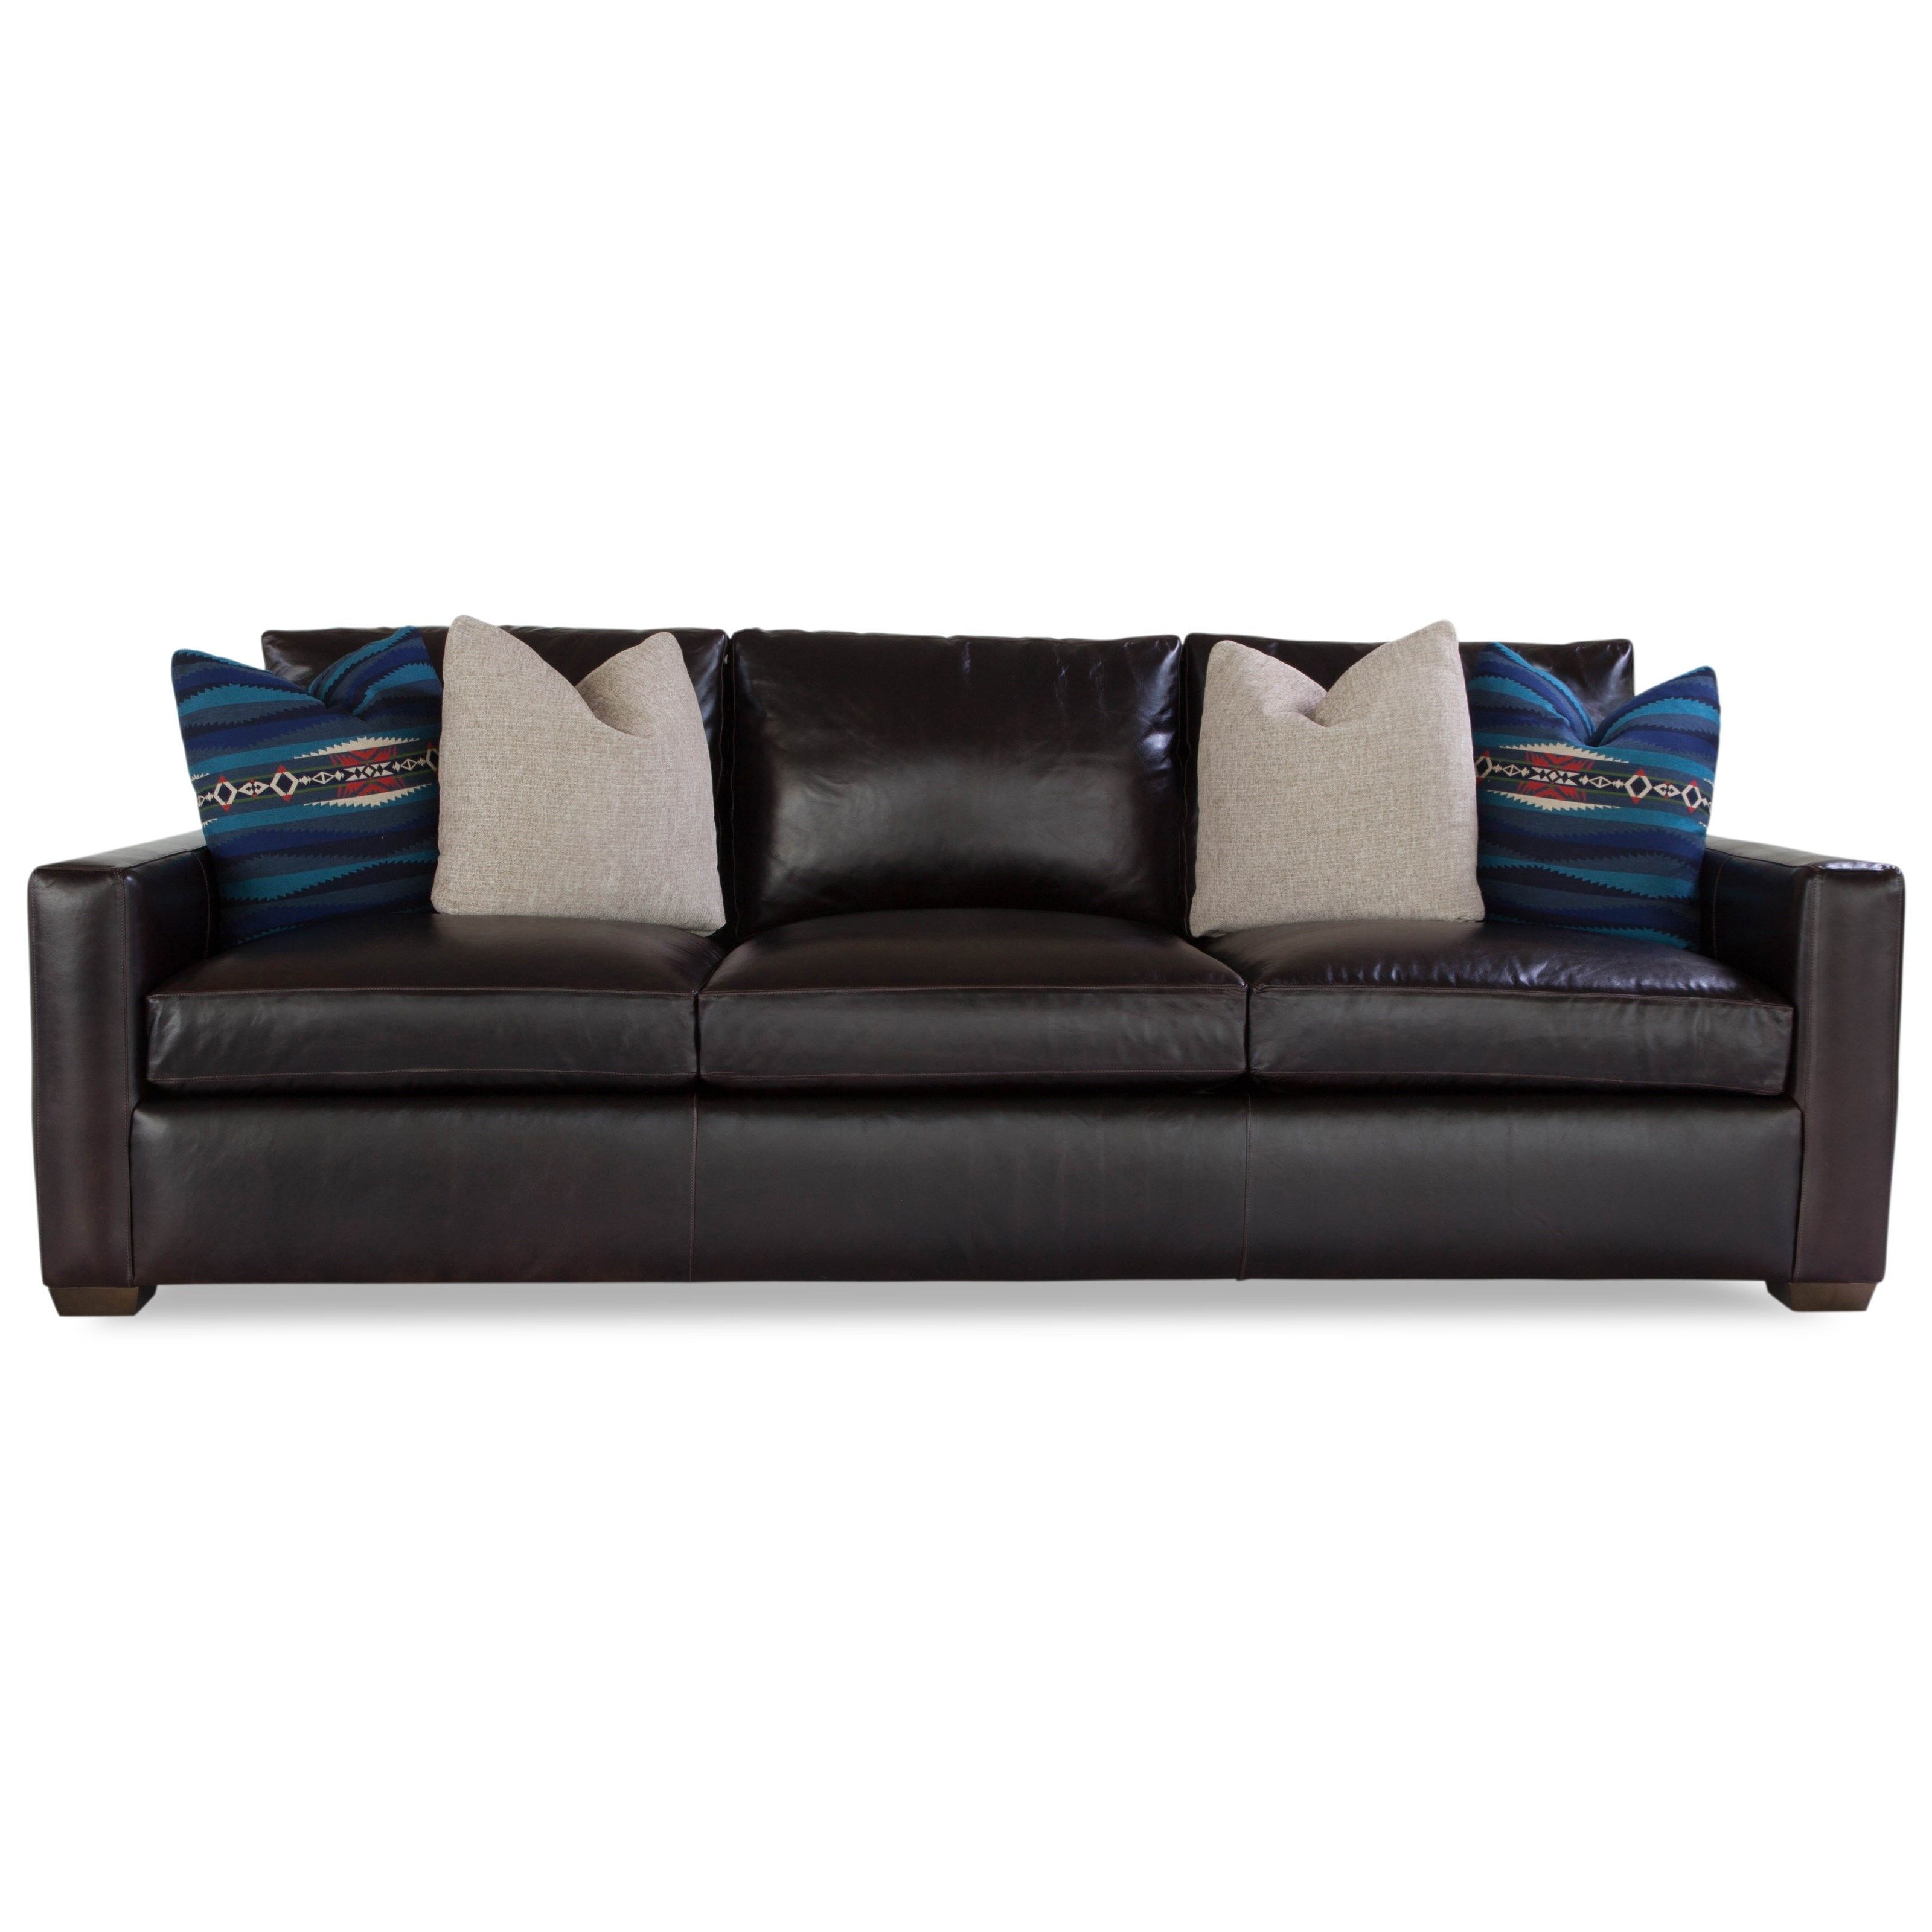 Plush Mod Sofa w/ Track Arms by Huntington House at Belfort Furniture